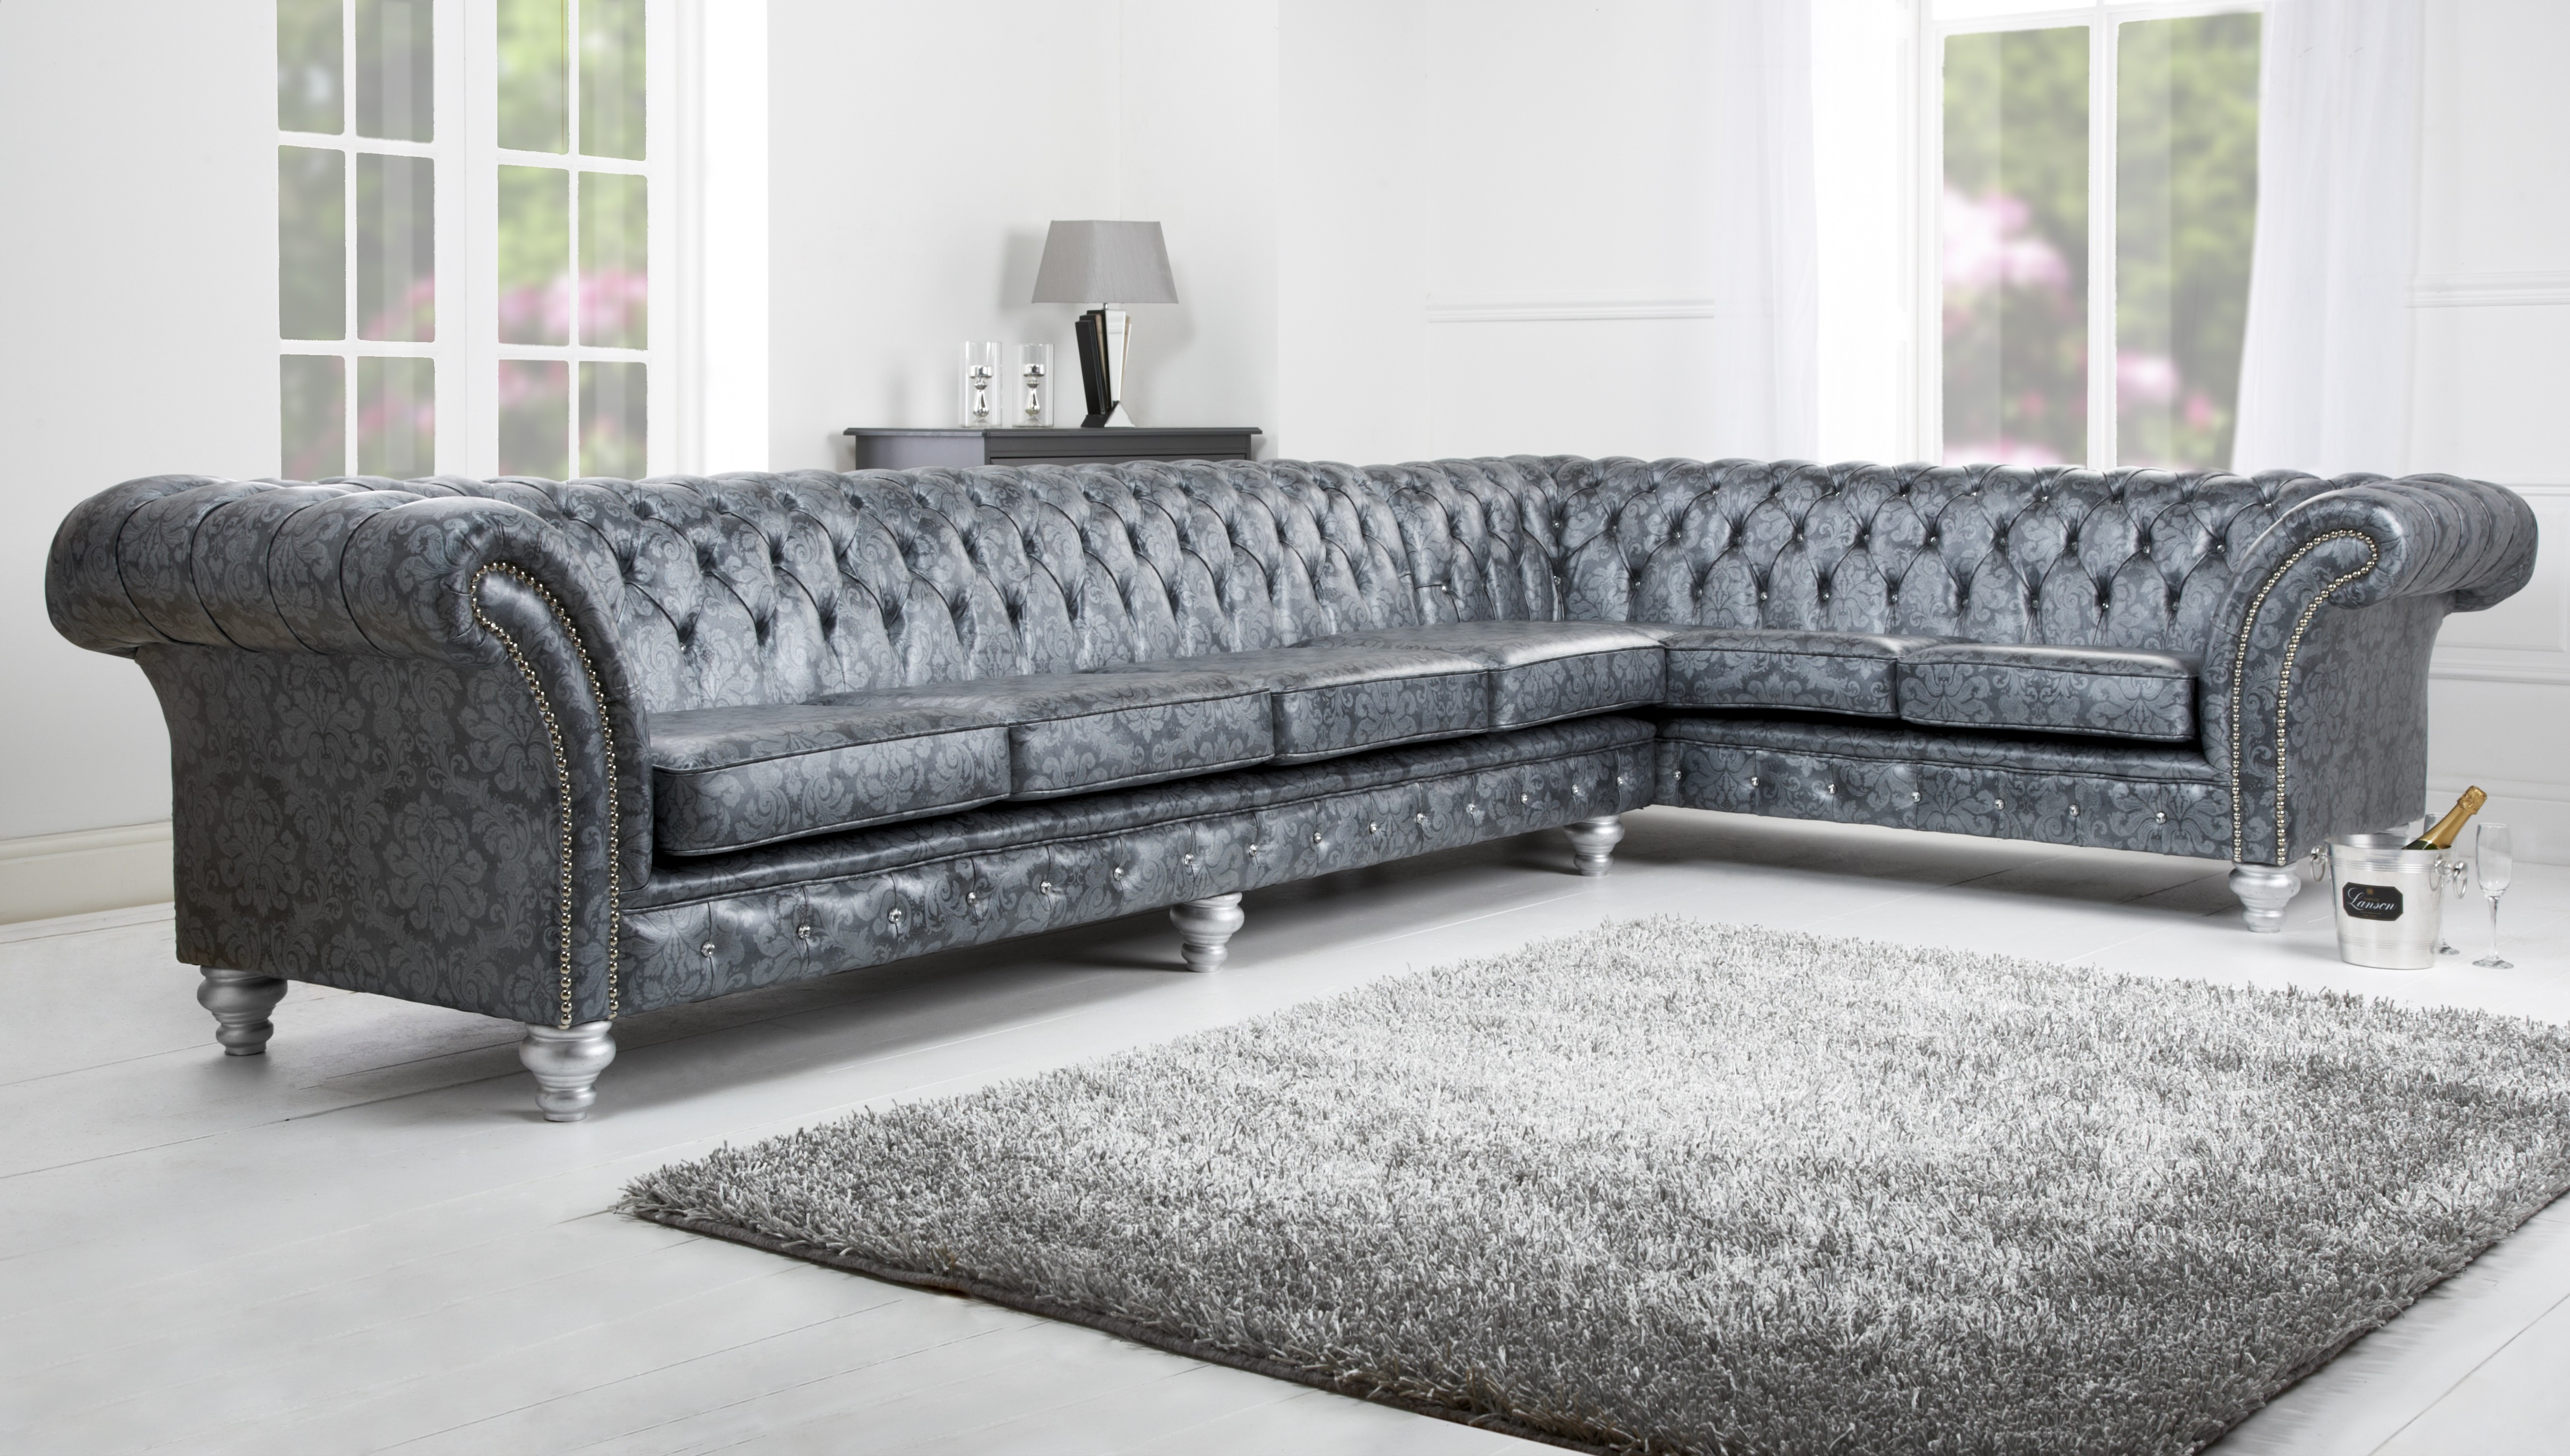 amazing cb2 leather sofa concept-Contemporary Cb2 Leather sofa Layout